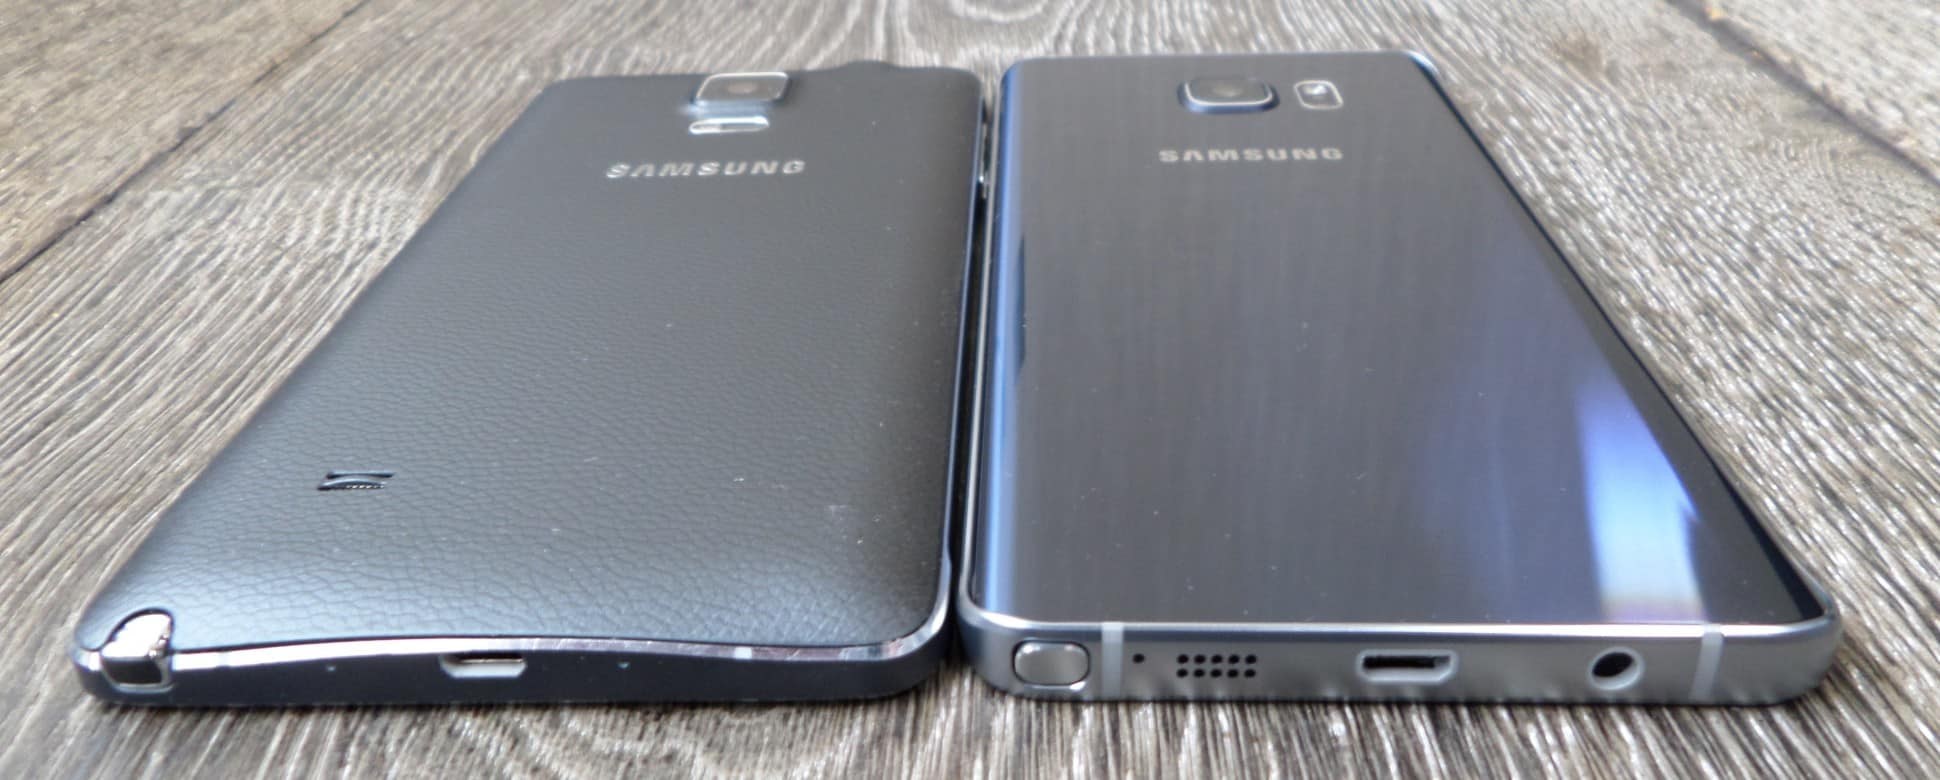 The Galaxy Note 5 (right) has greatly upgraded build materials compared to the Galaxy Note 4 (left) - Image credit Gordon Kelly